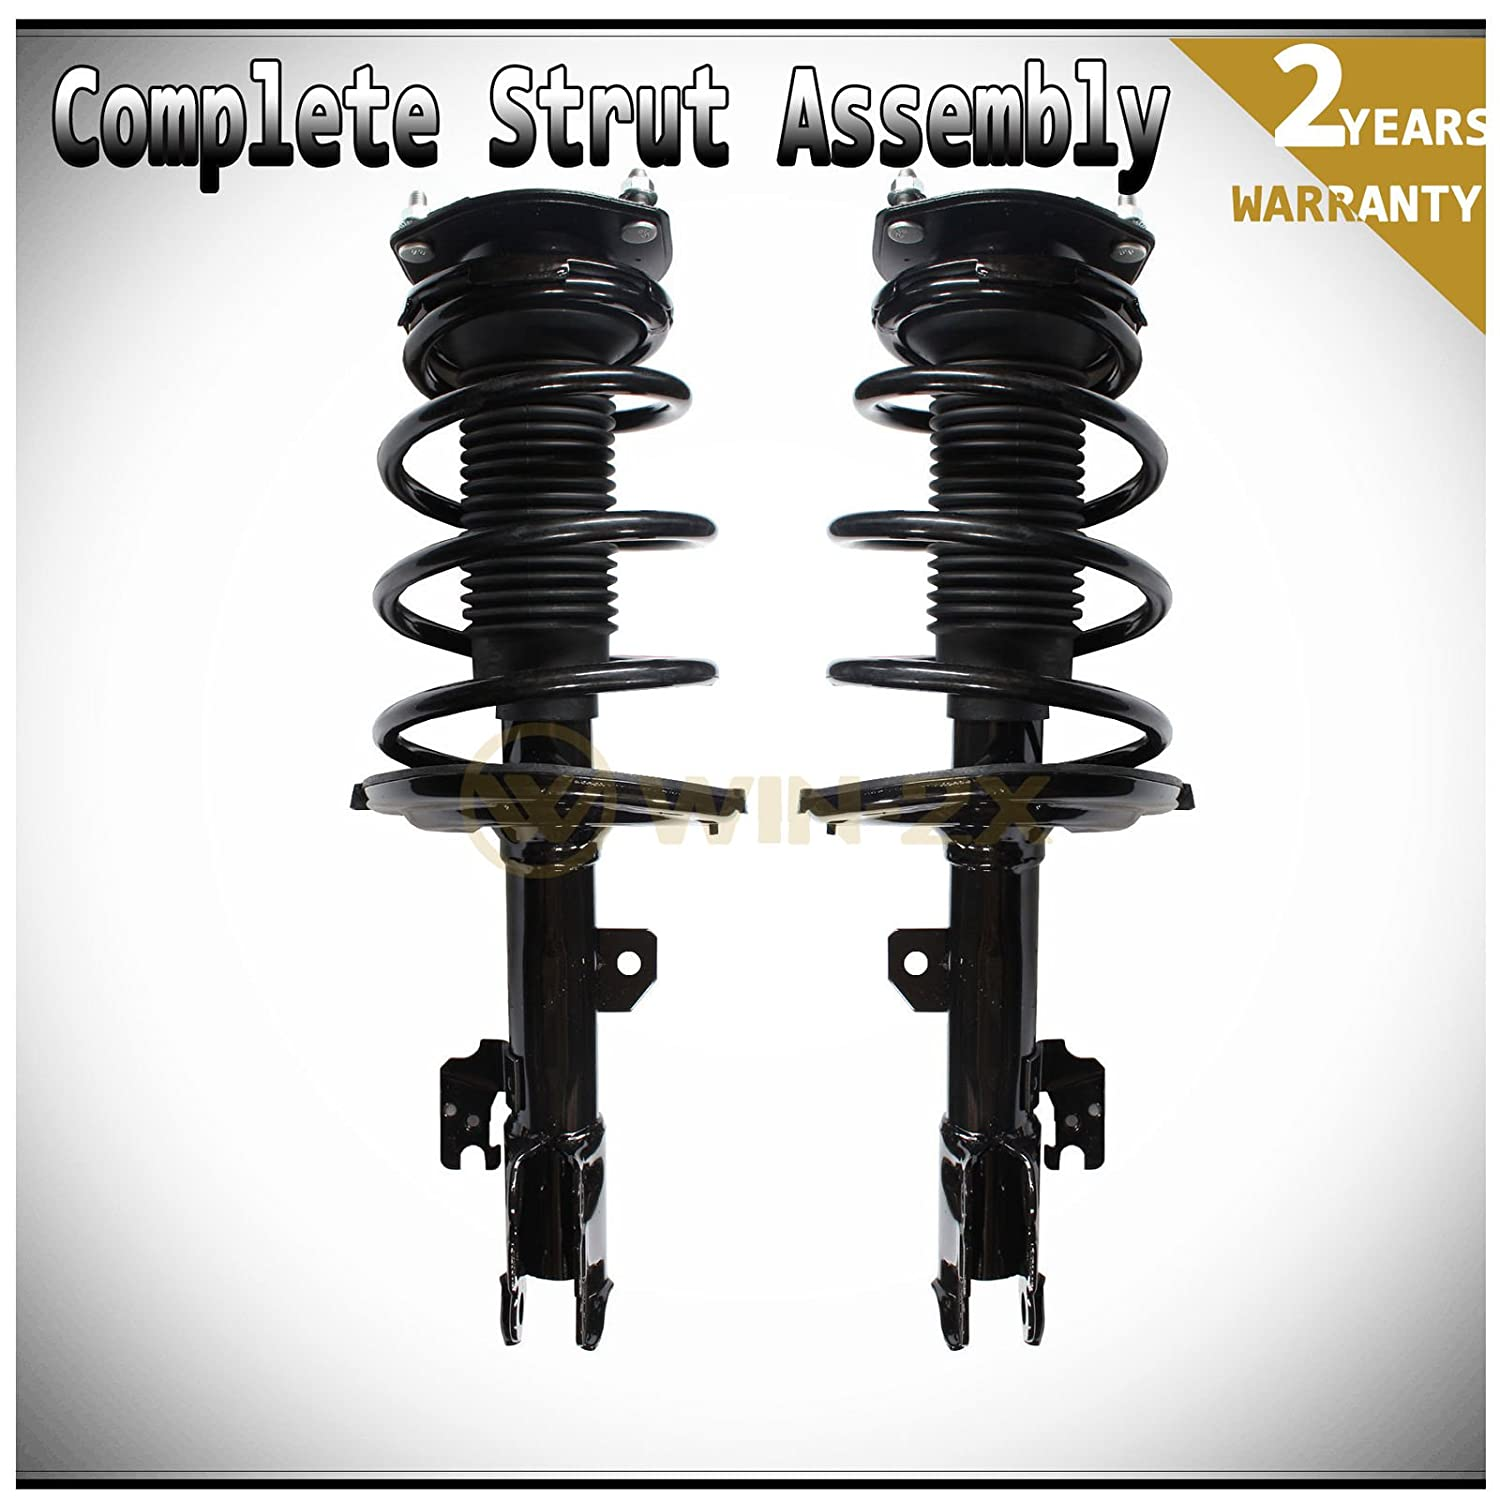 WIN-2X New 2pcs Front Left /& Right Side Quick Complete Suspension Shock Struts /& Coil Springs Assembly Kit Fit 04-06 Lexus ES330 04-06 Toyota Camry 05-06.1 Avalon 04-06.6 Solara